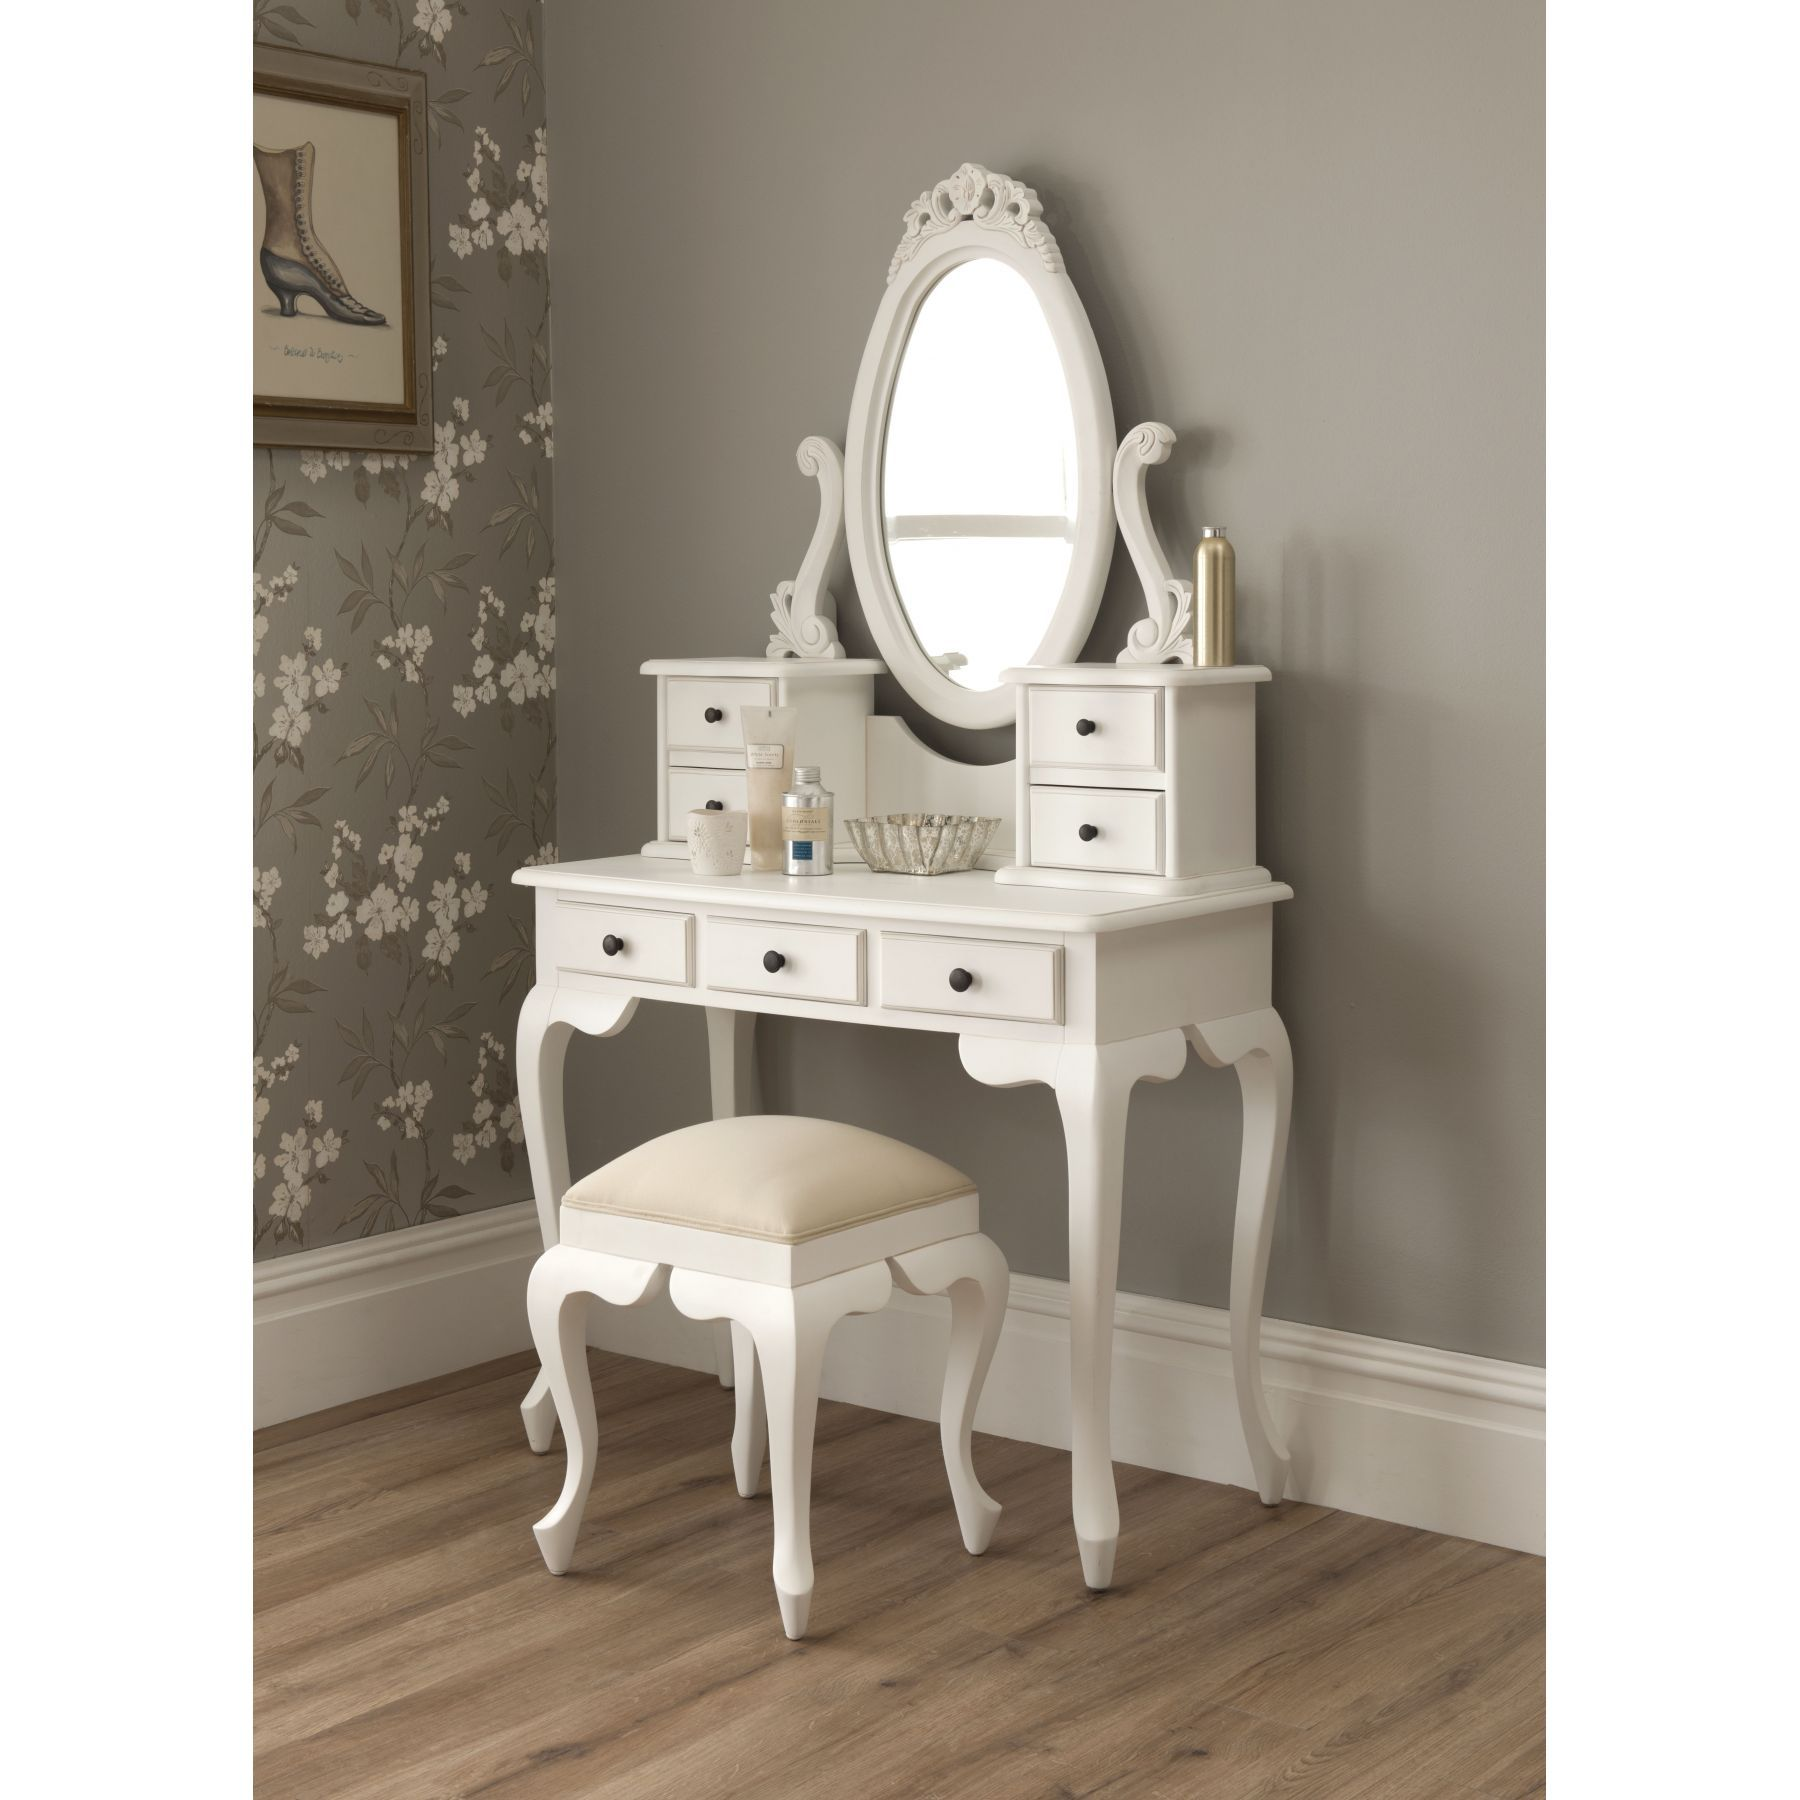 Superb Dressing Table Mirror